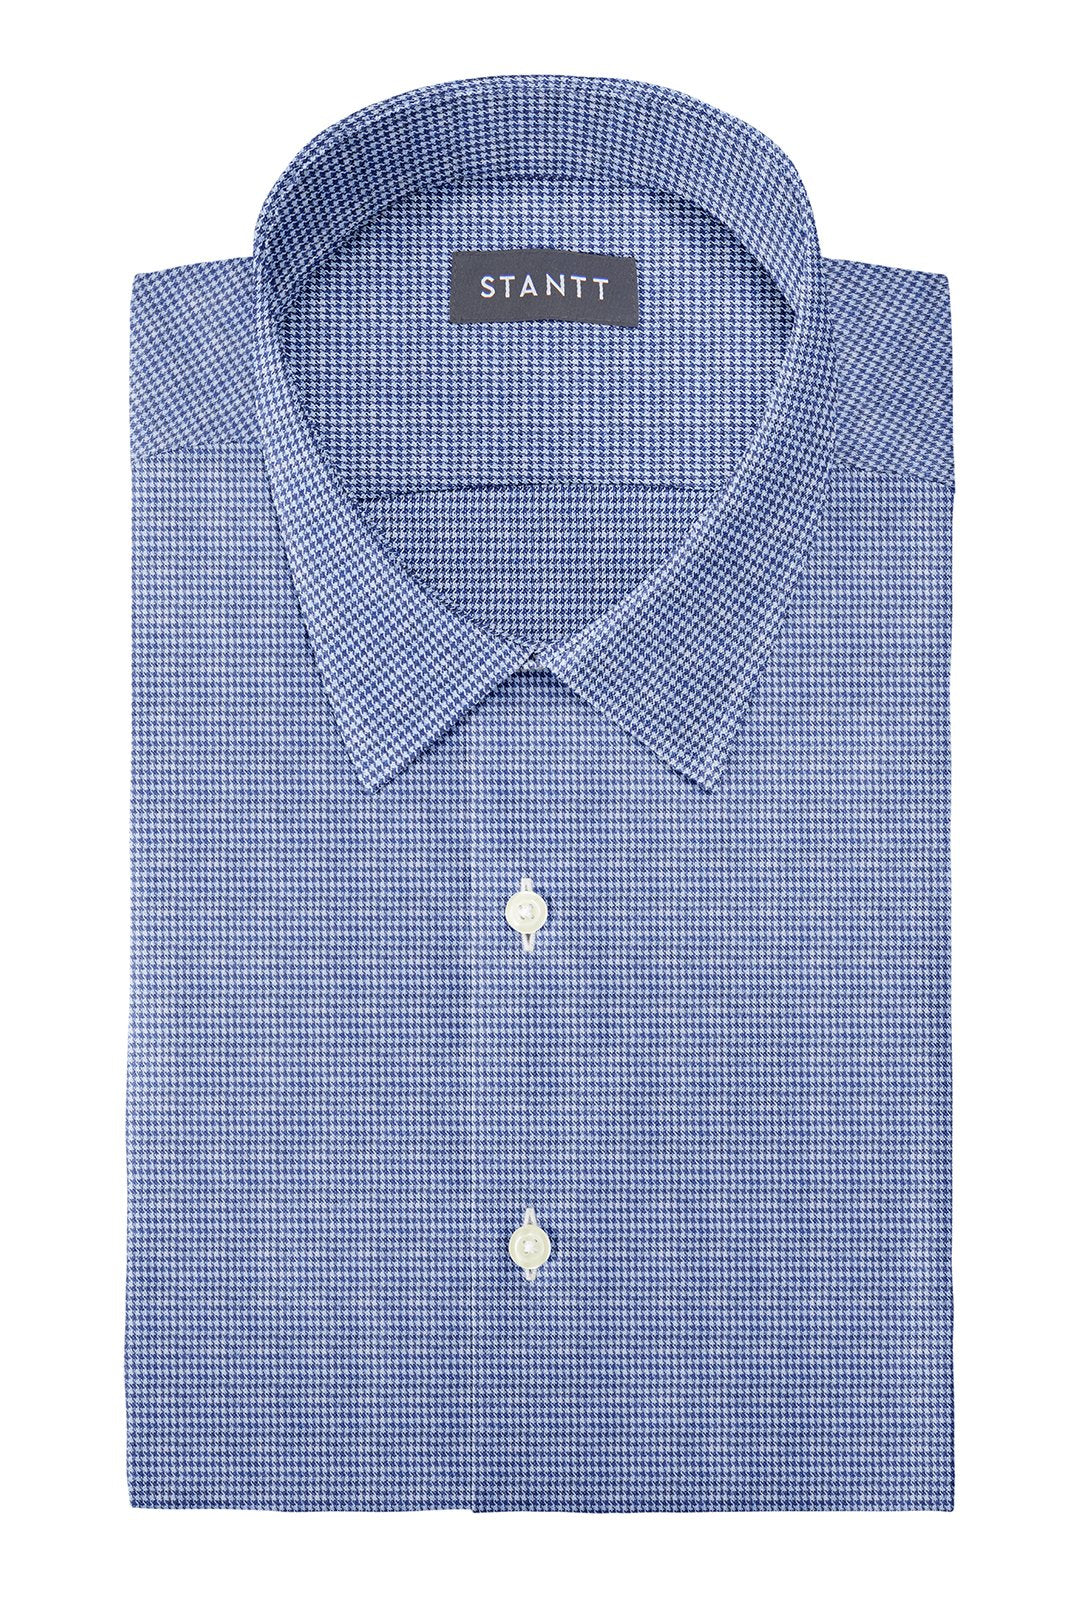 Slate Blue Houndstooth Flannel: Semi-Spread Collar, French Cuff